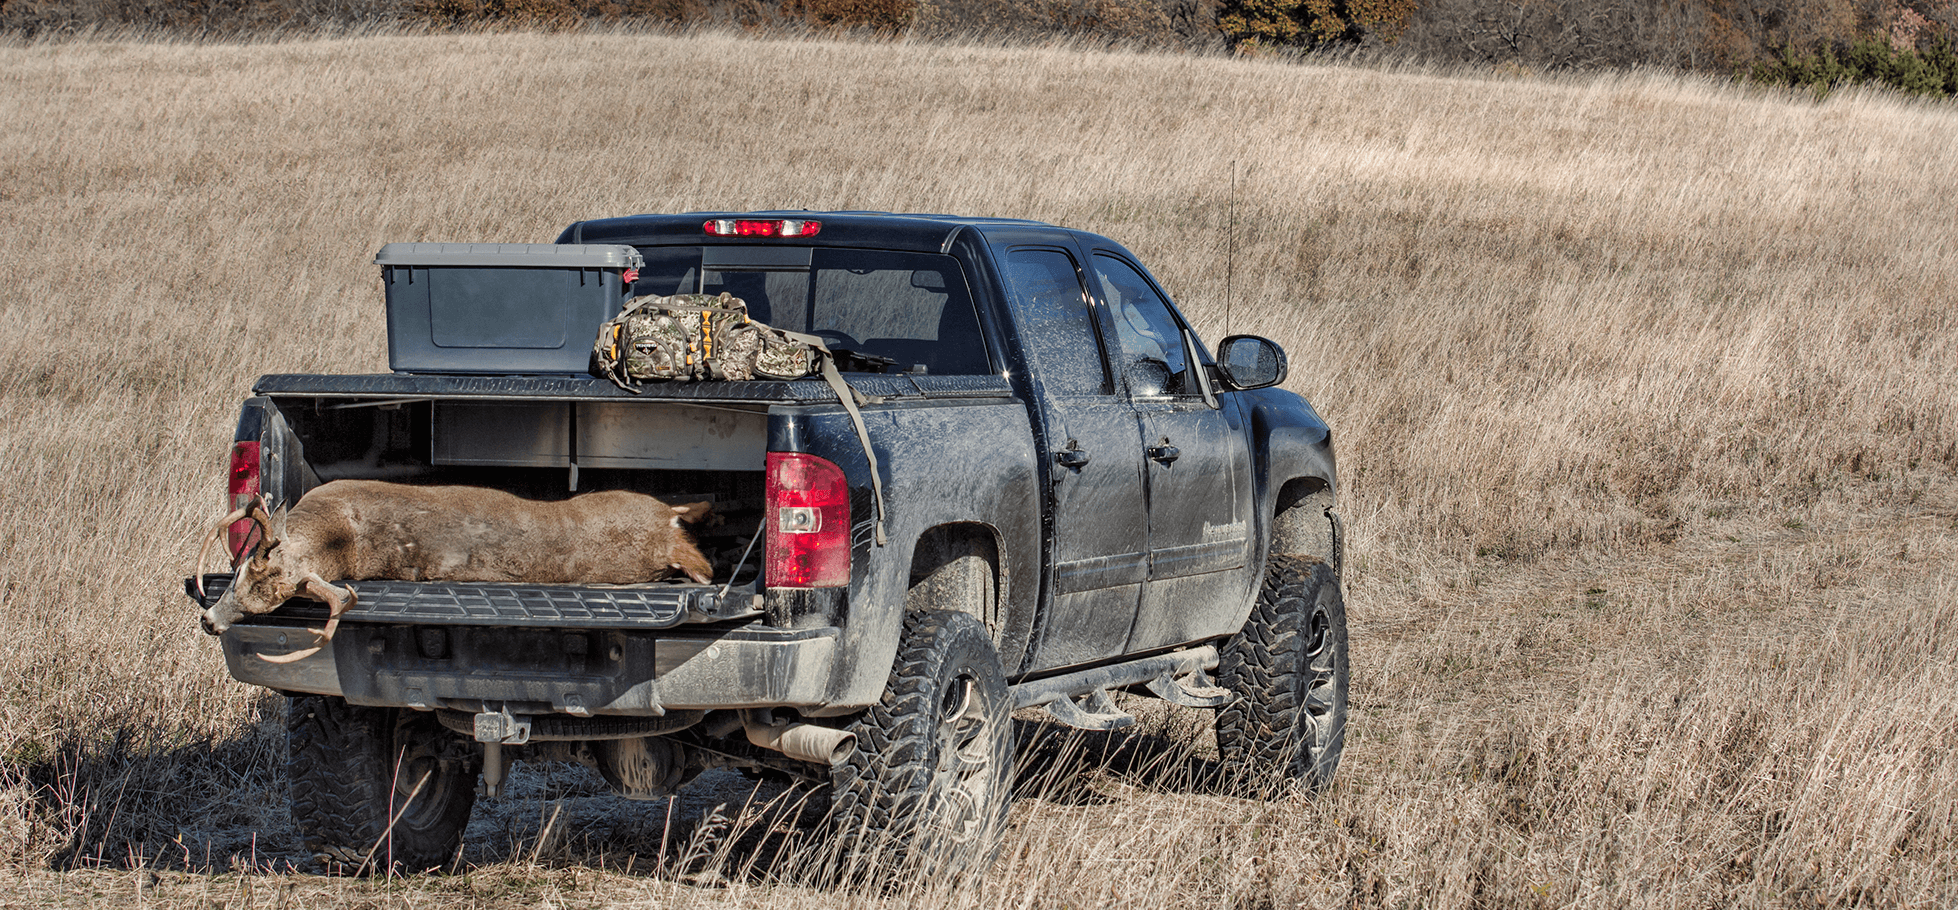 270 hard truck bed cover in fields on chevy silverado with deer